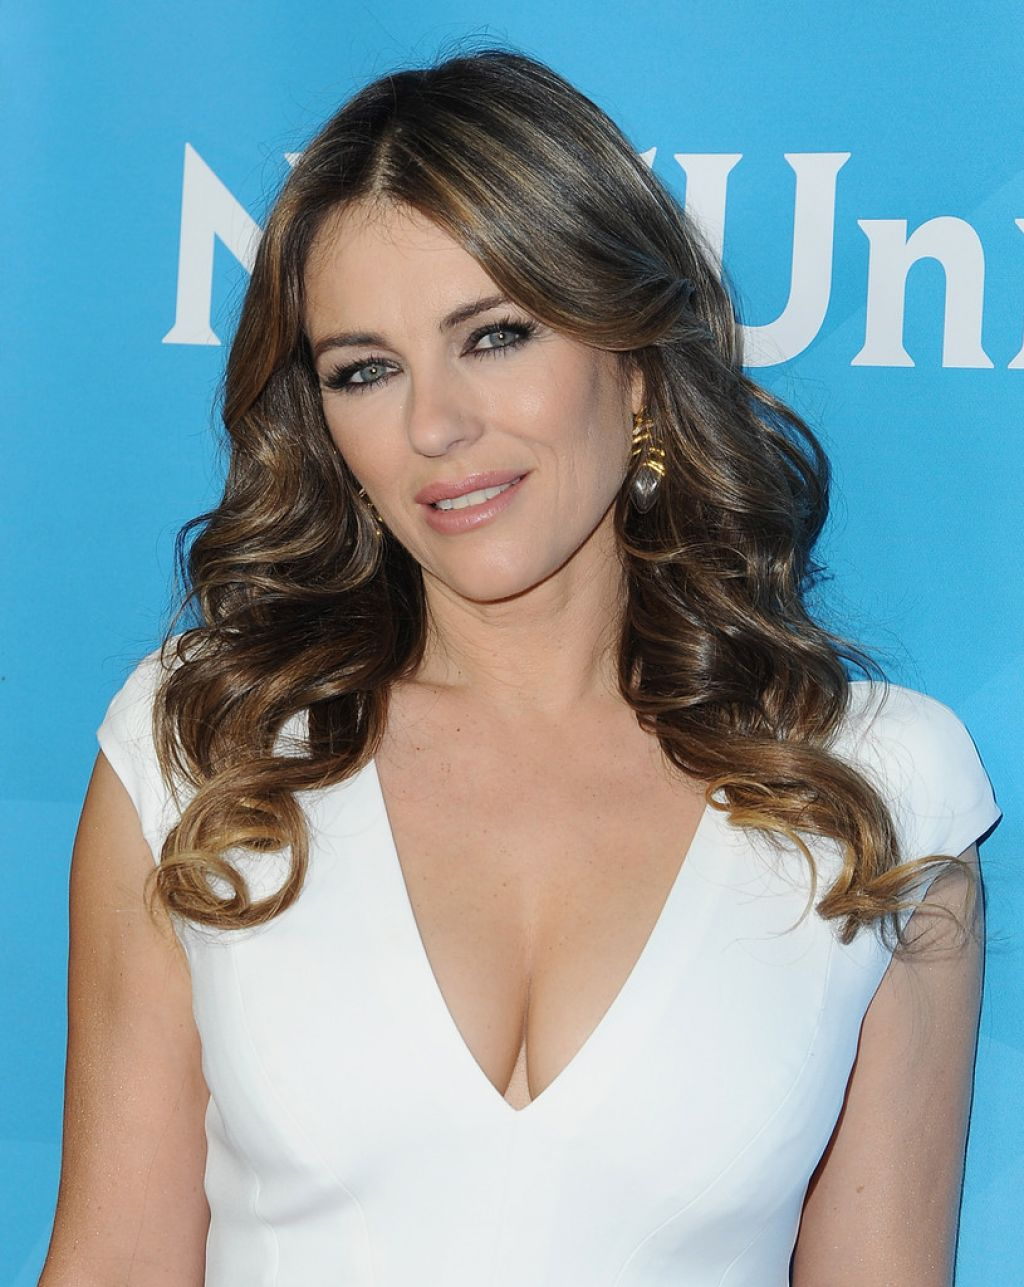 Elizabeth Hurley Nbcuniversal S 2015 Winter Tca Tour